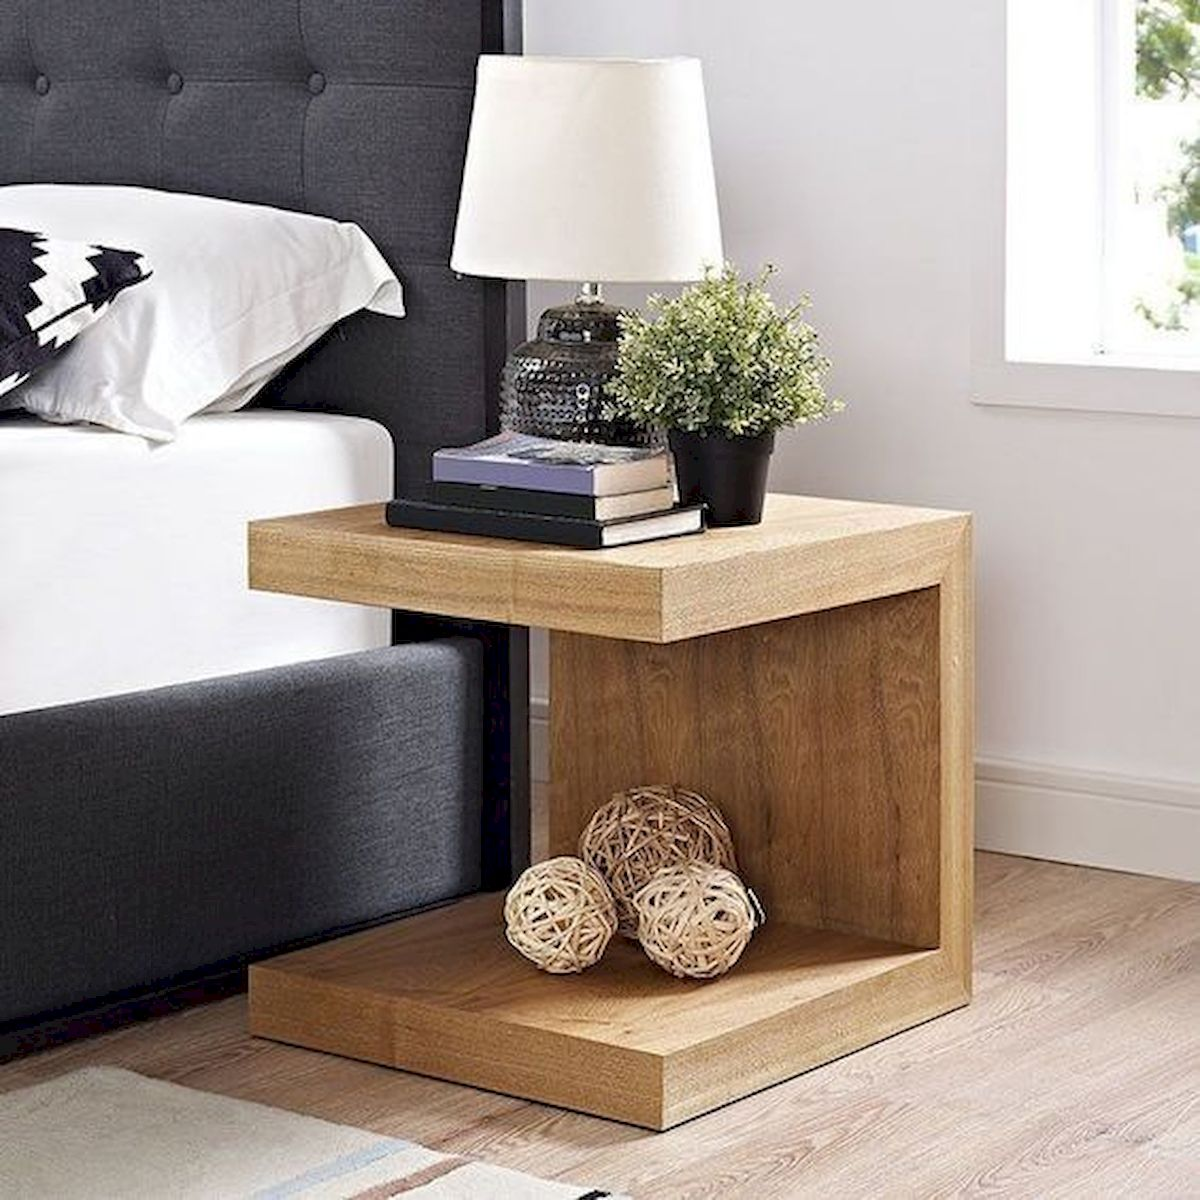 45 Awesome Furniture Ideas for Small House With Wood Project Ideas (5)